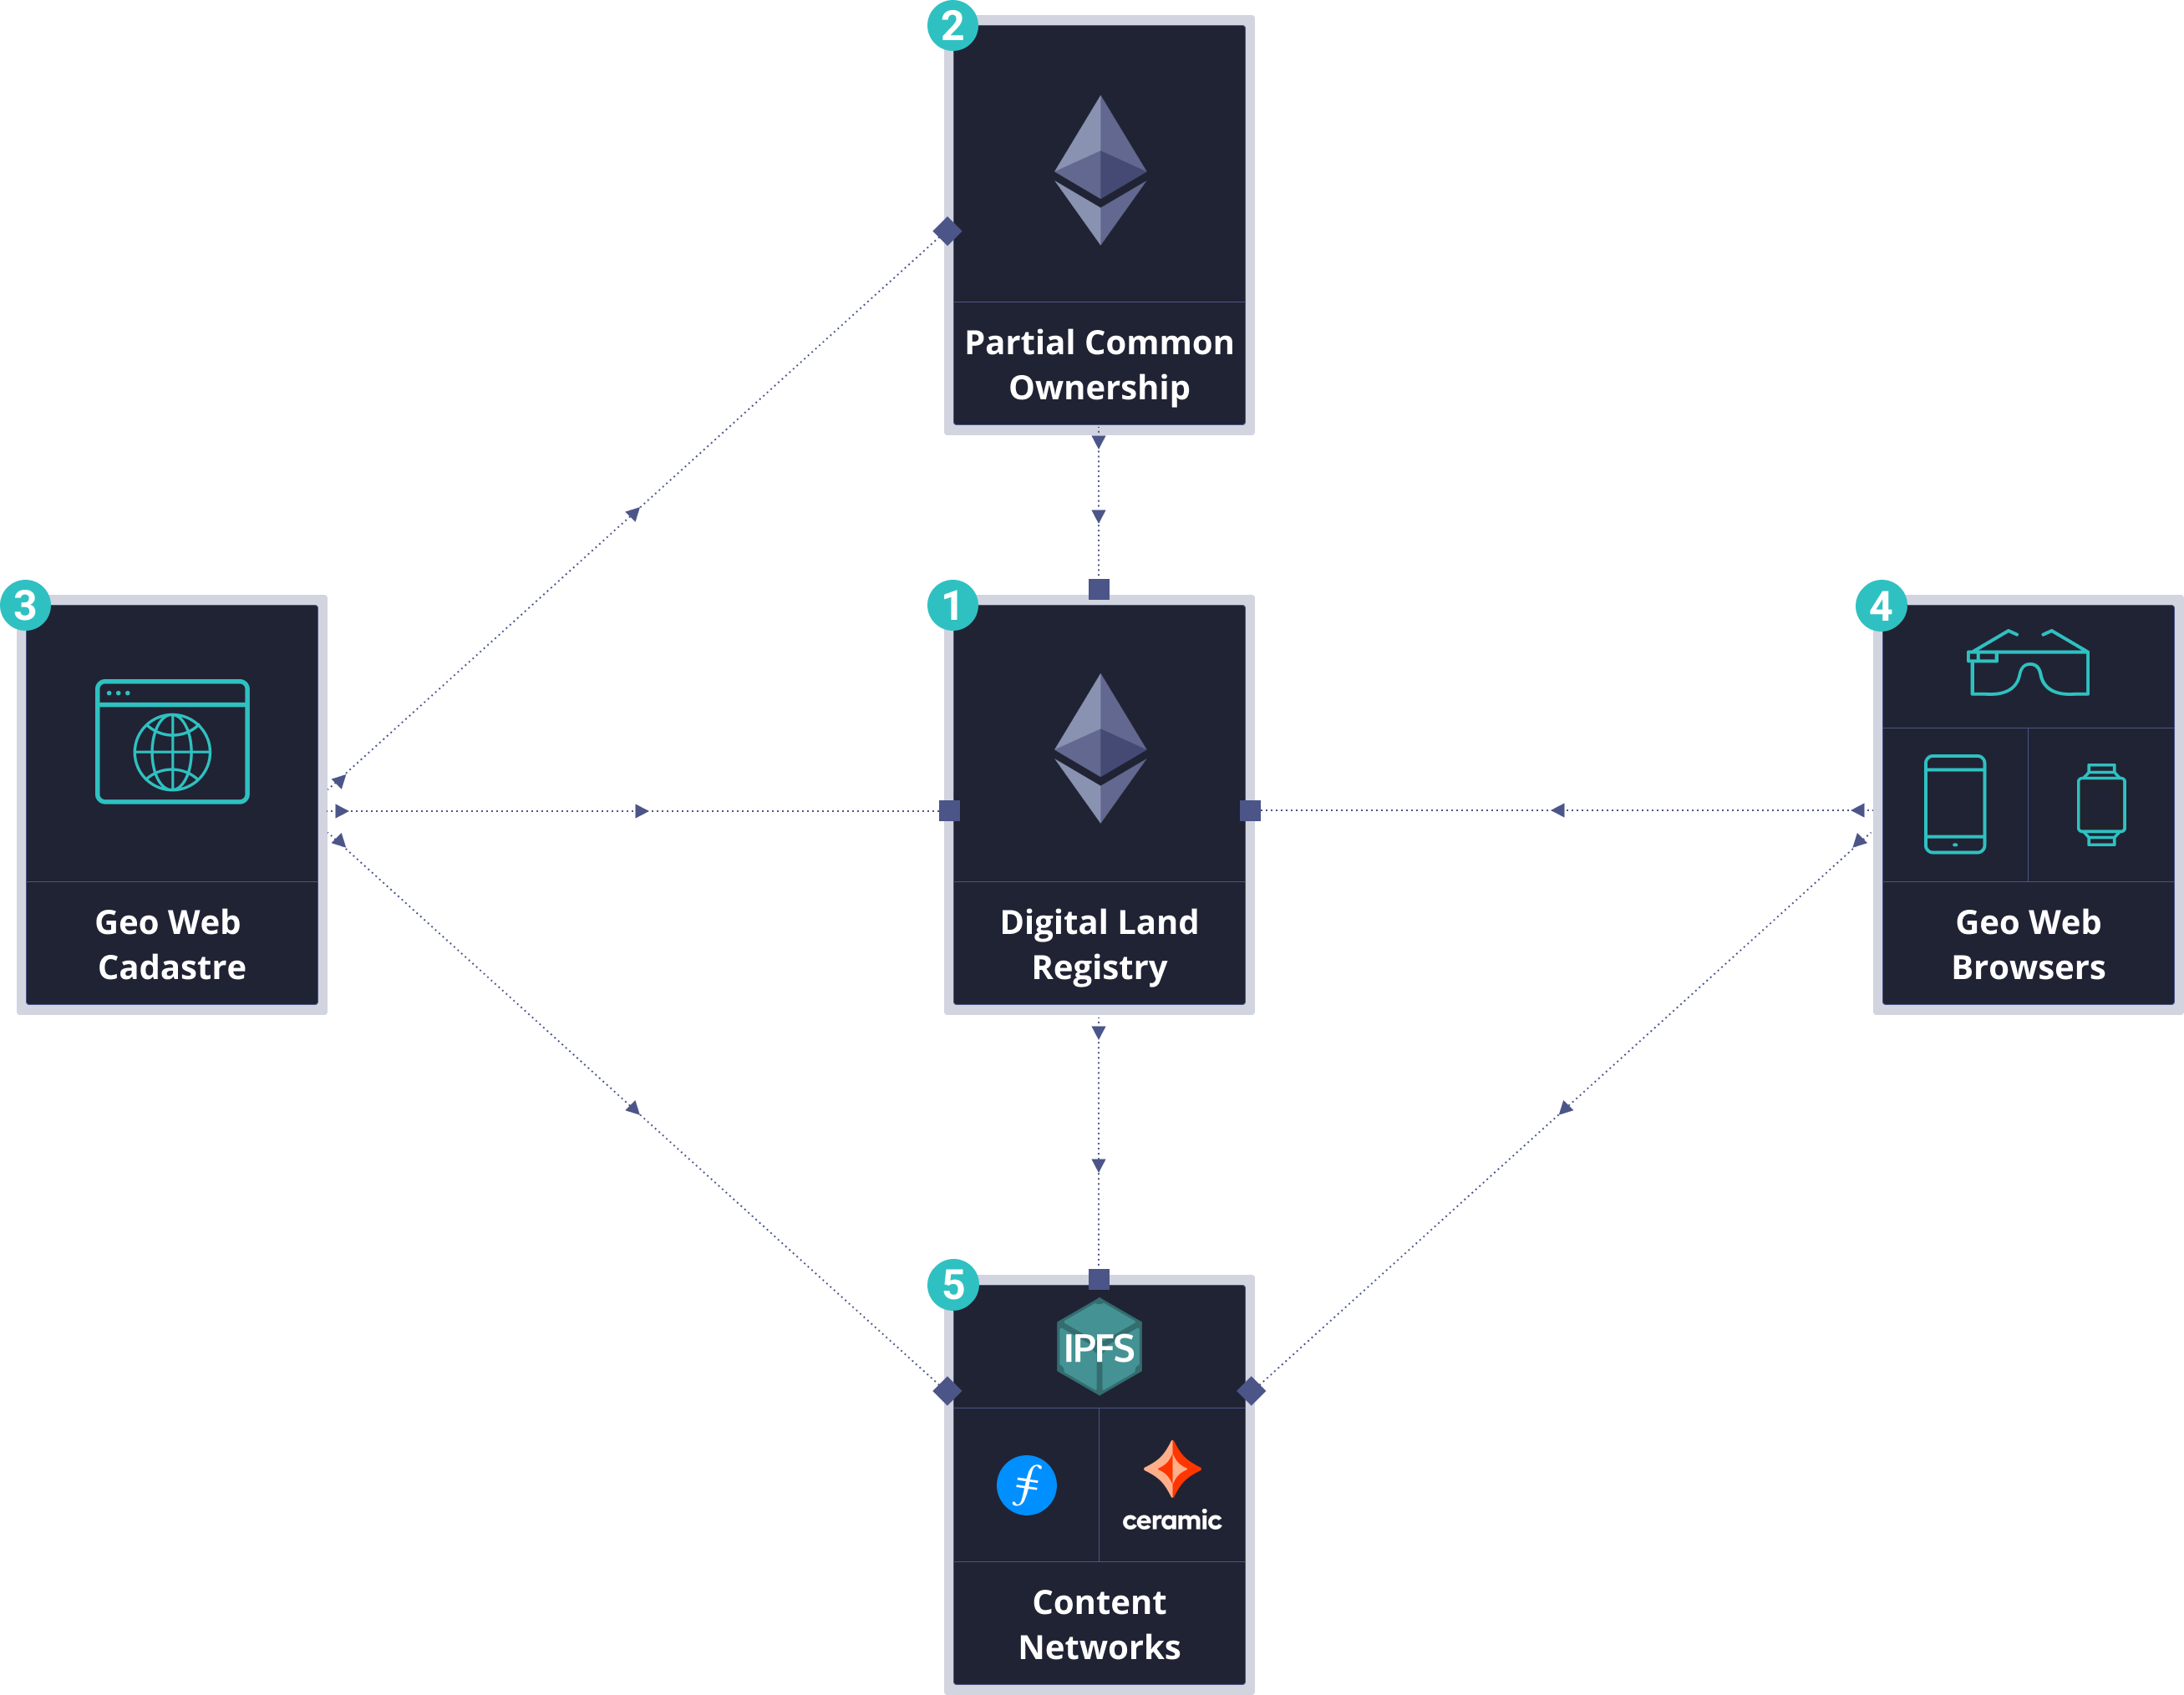 A high-level diagram of the Geo Web's network architecture